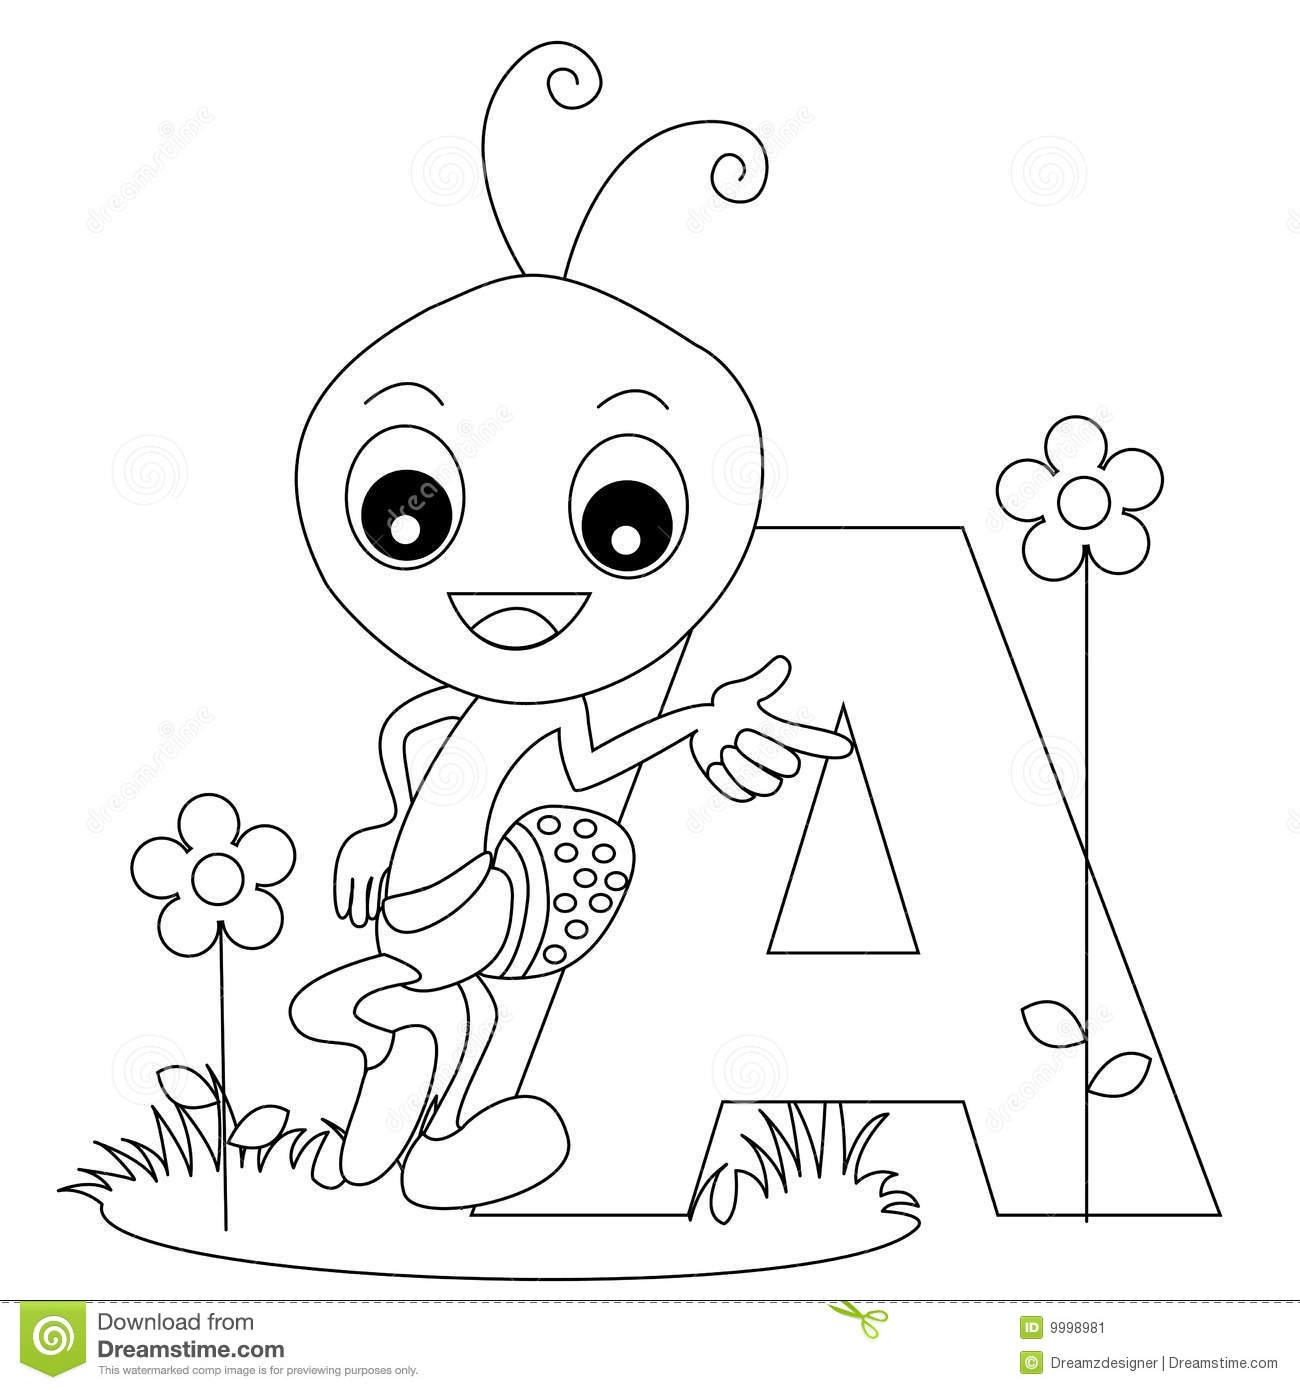 Royalty Free Stock Photo Download Animal Alphabet A Coloring Page